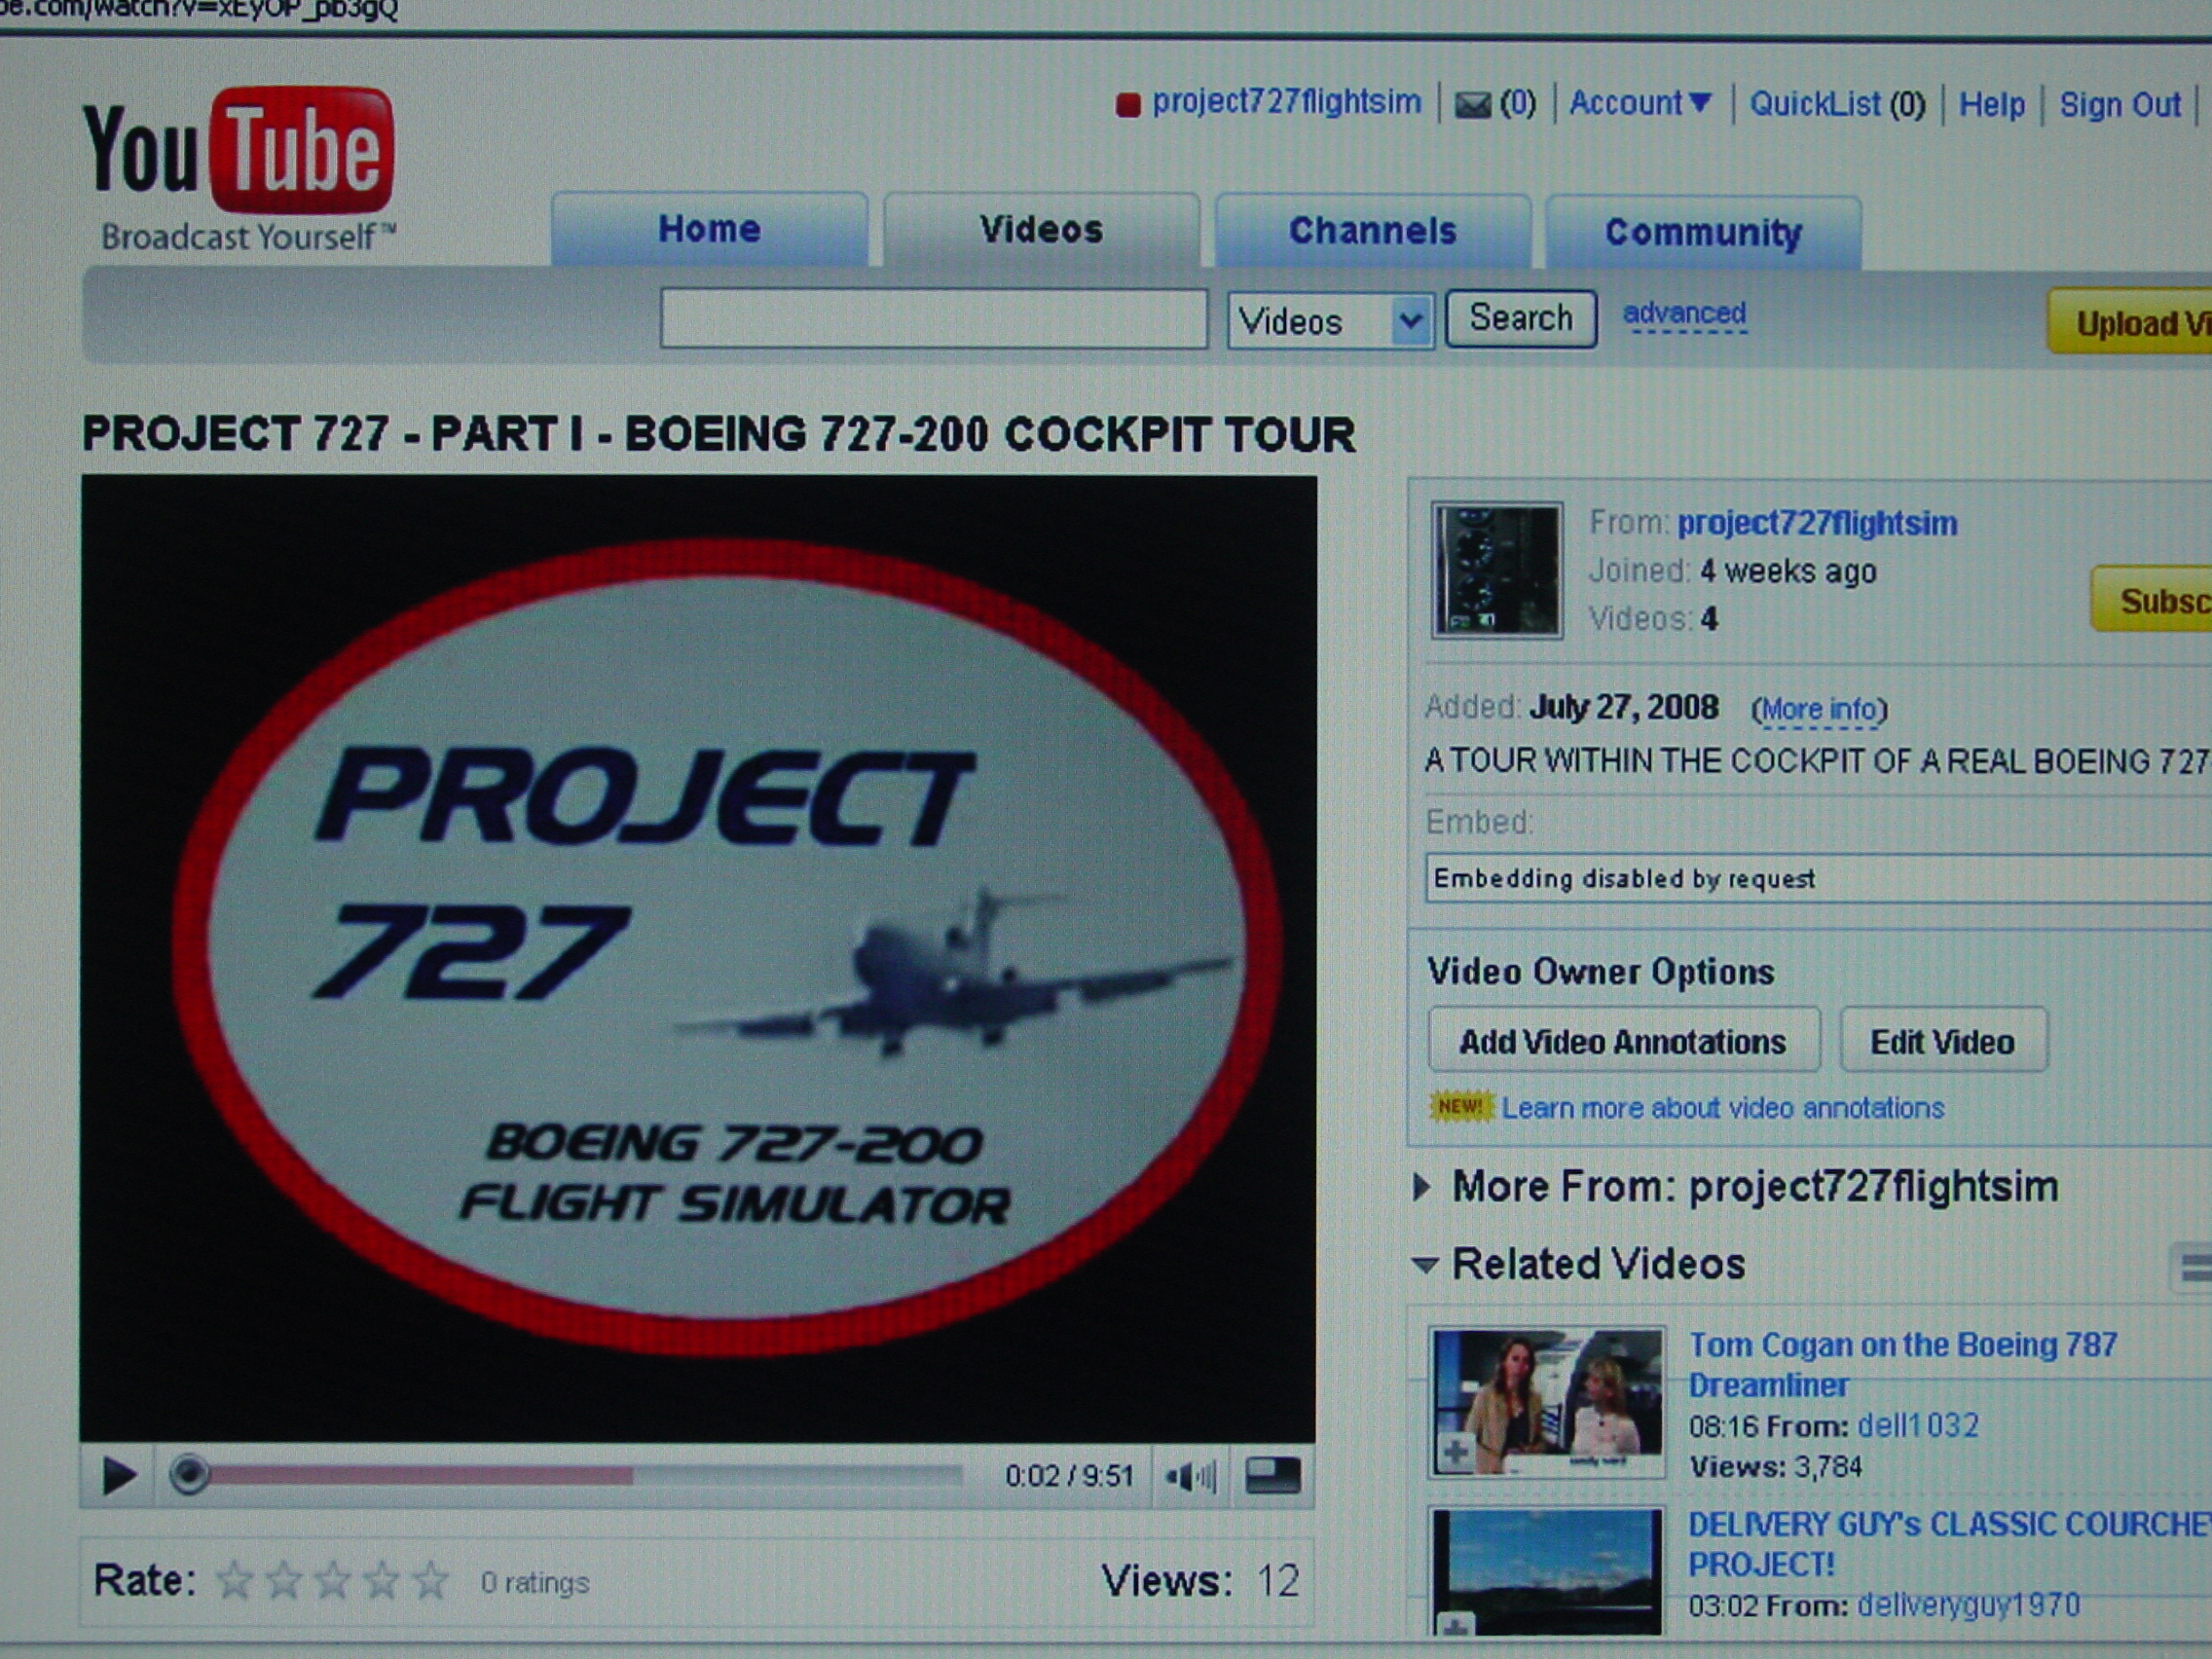 PROJECT 727